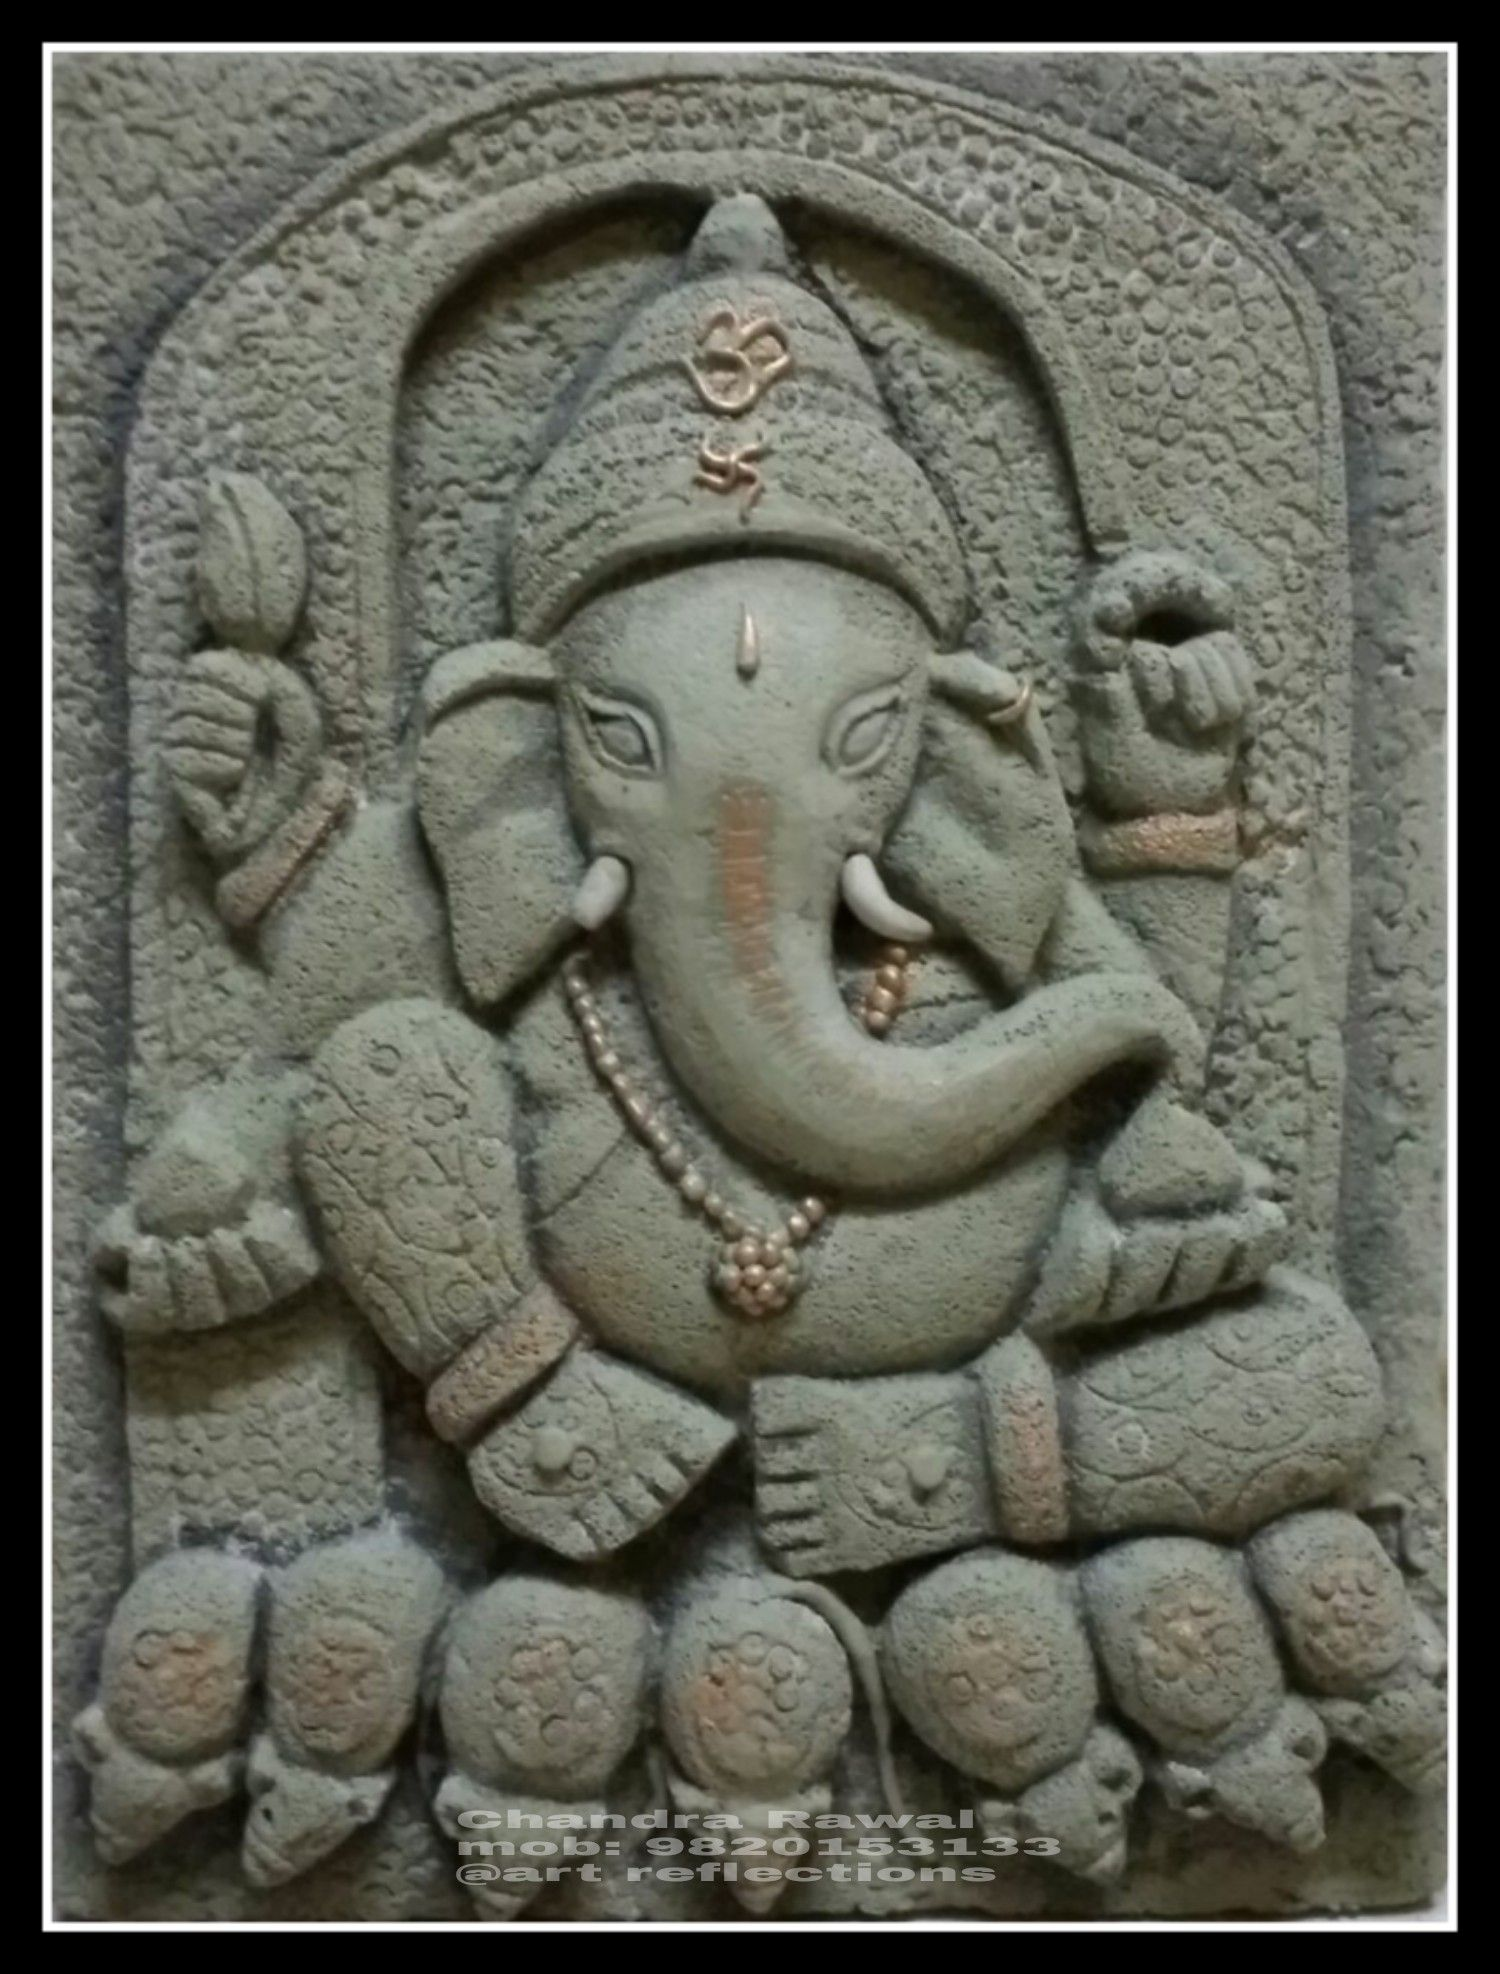 Hand carved siporex 3d mural siporex 3d murals for Mural art of ganesha